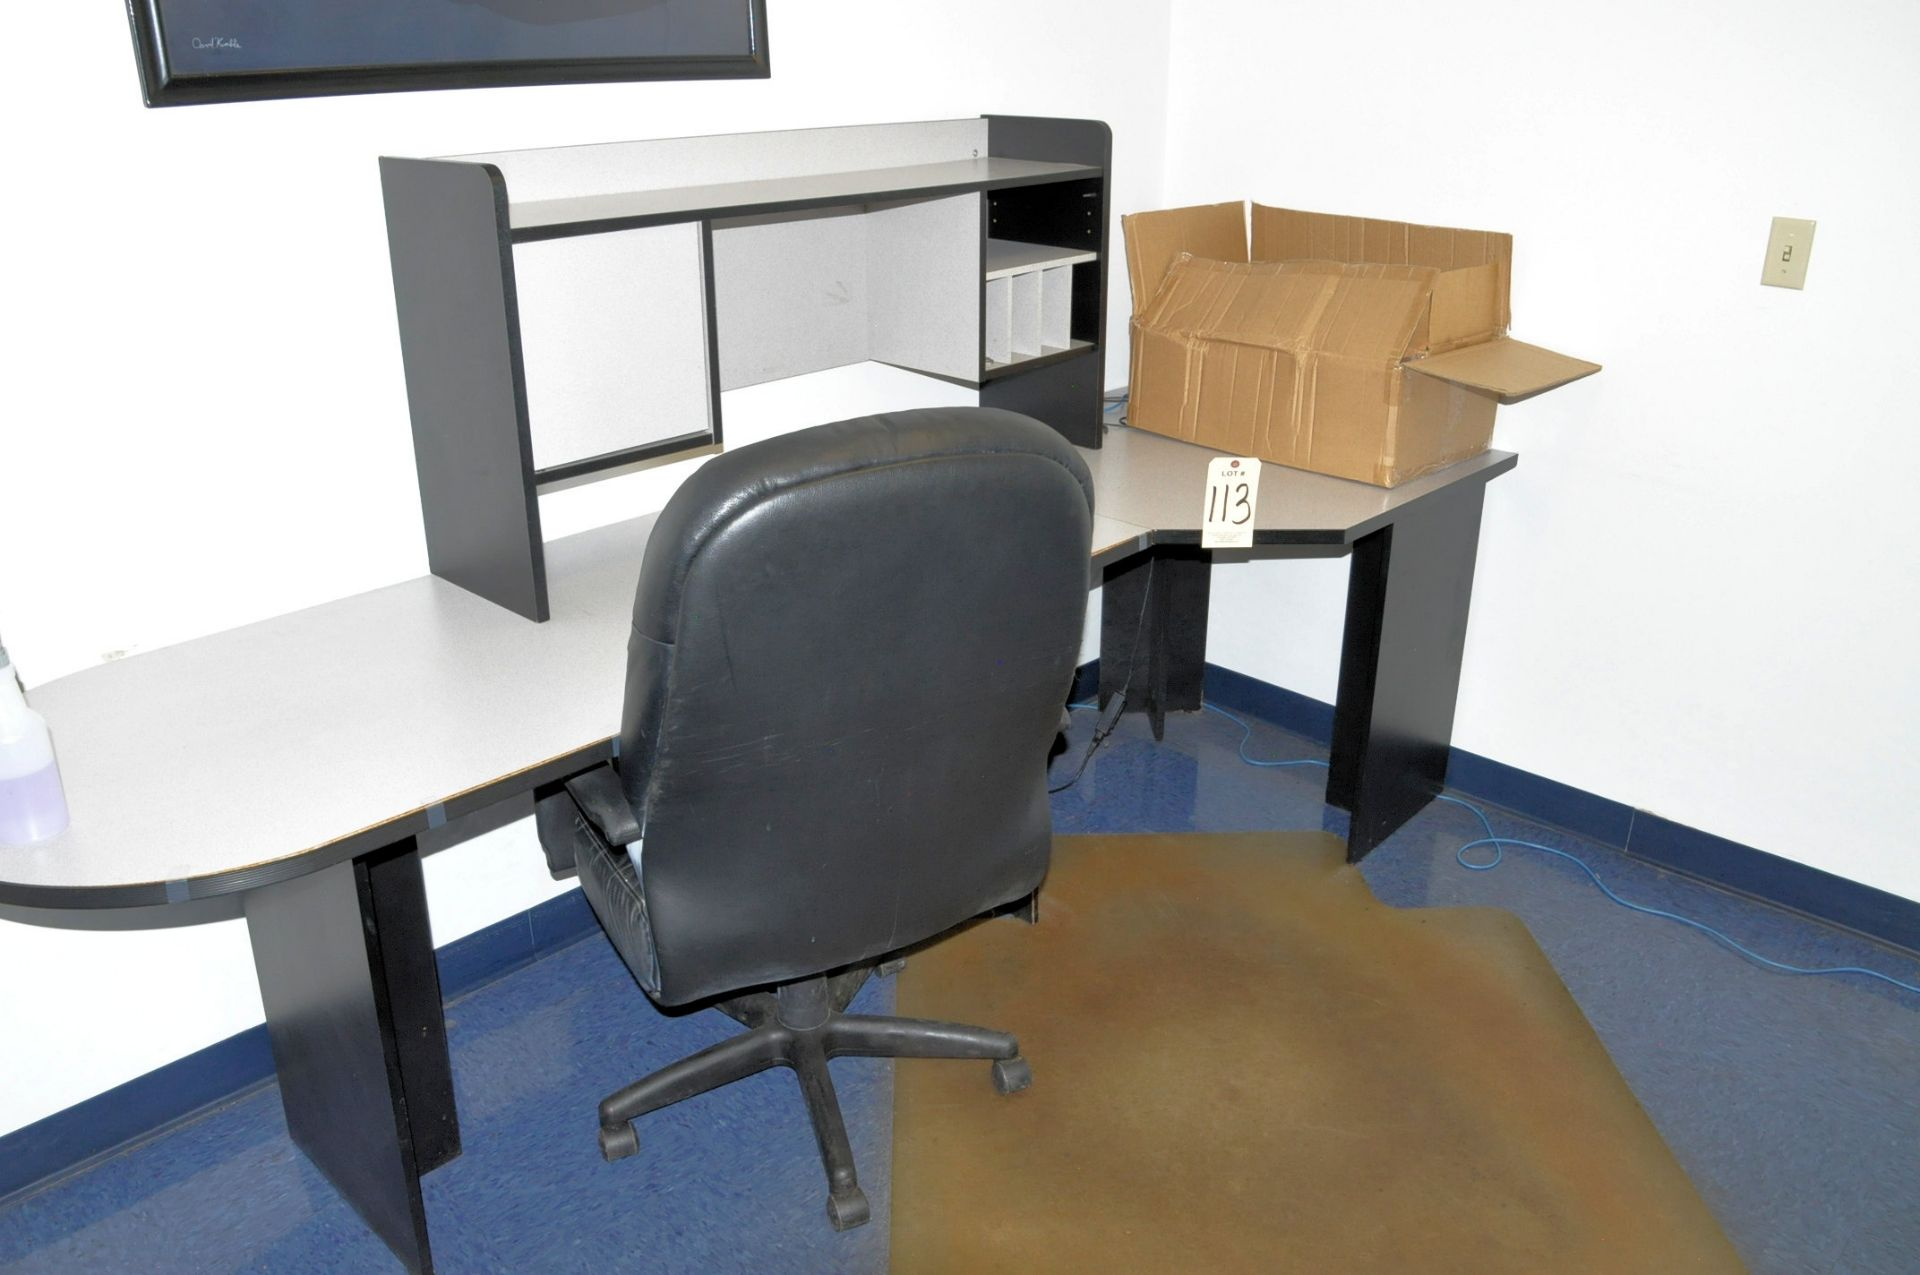 Lot 113 - Lot-(2) Desks and (2) Chairs in (1) Office